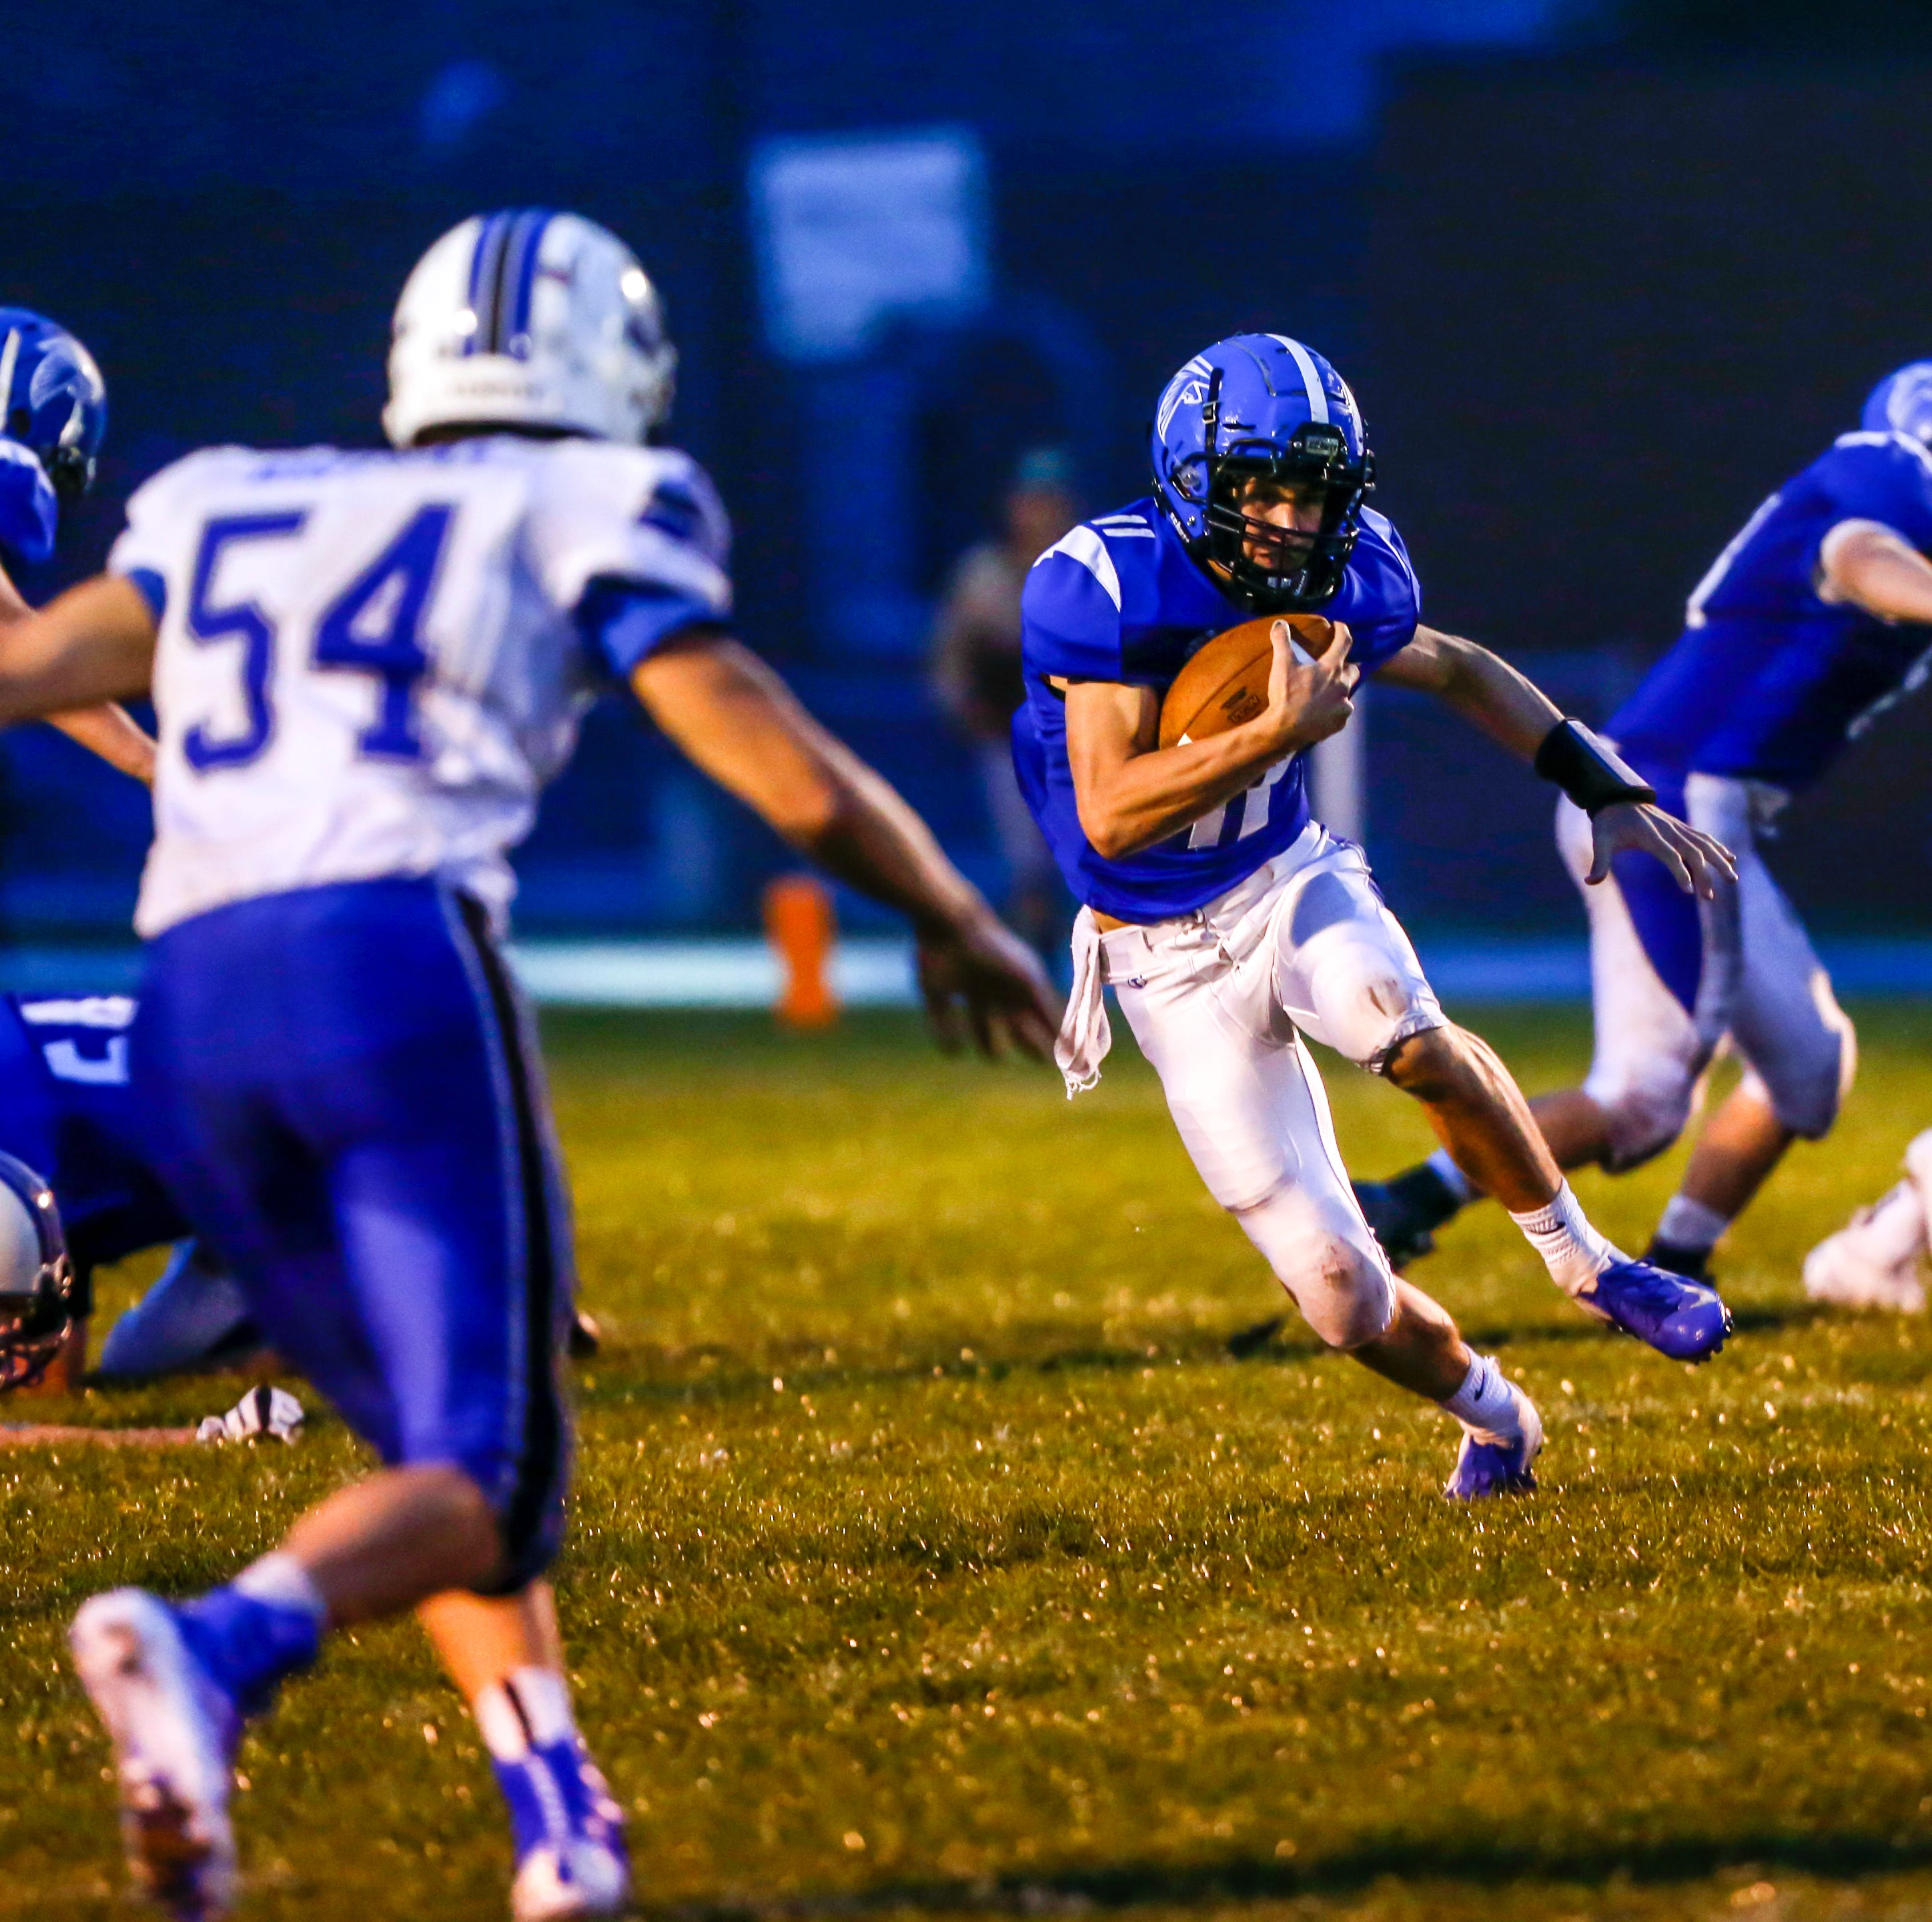 WIAA football: Three-time defending state champion Amherst opens title defense